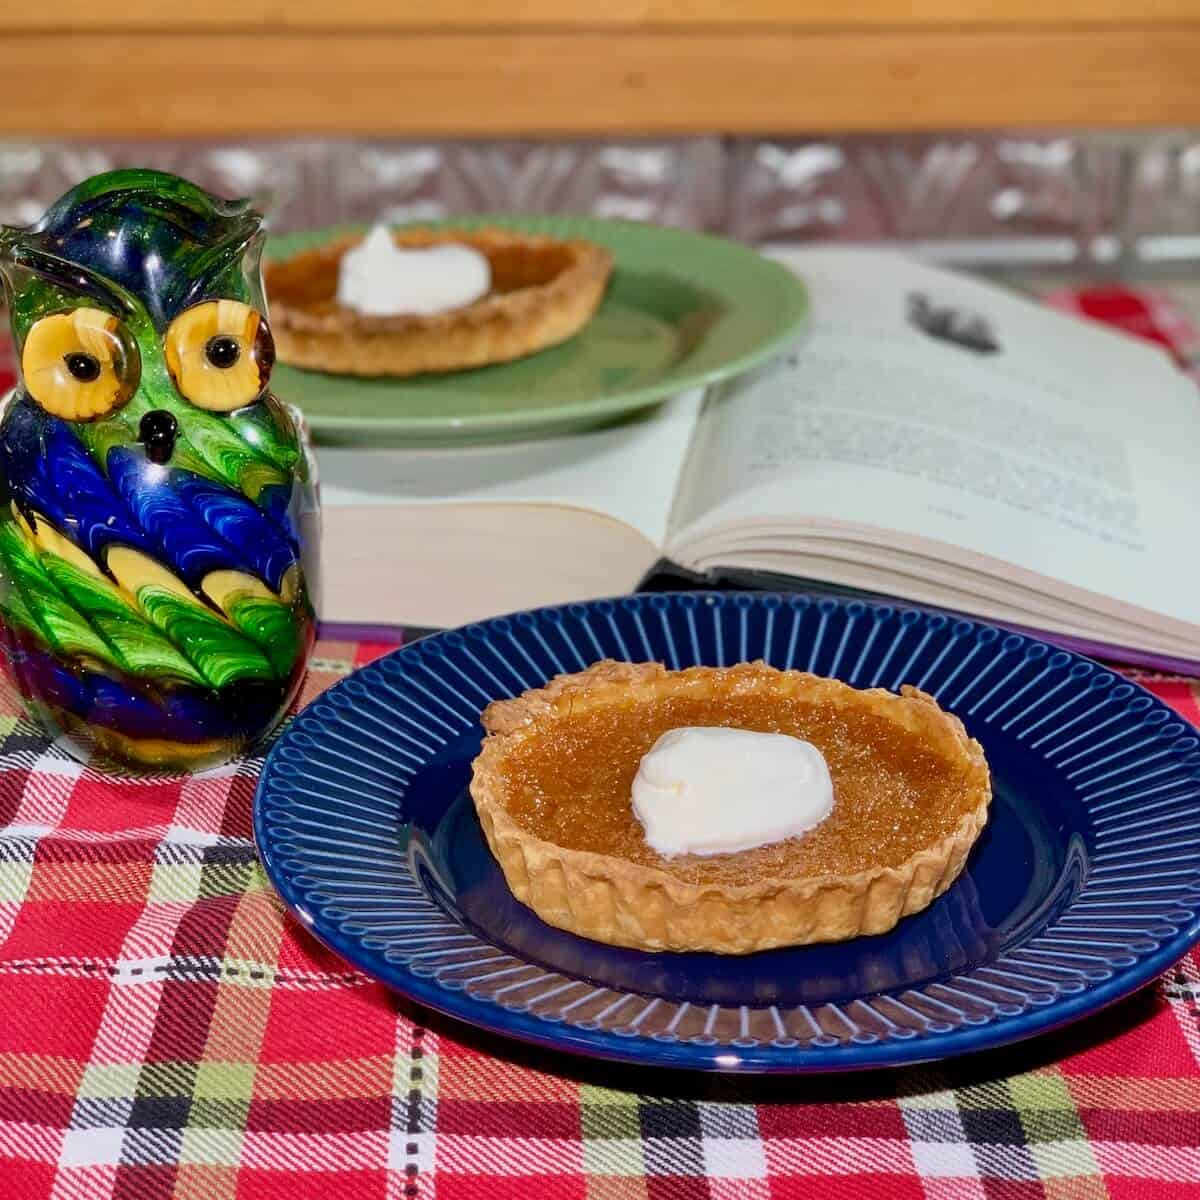 Treacle Tart on blue plate with tart on green plate on open book & glass owl in background.